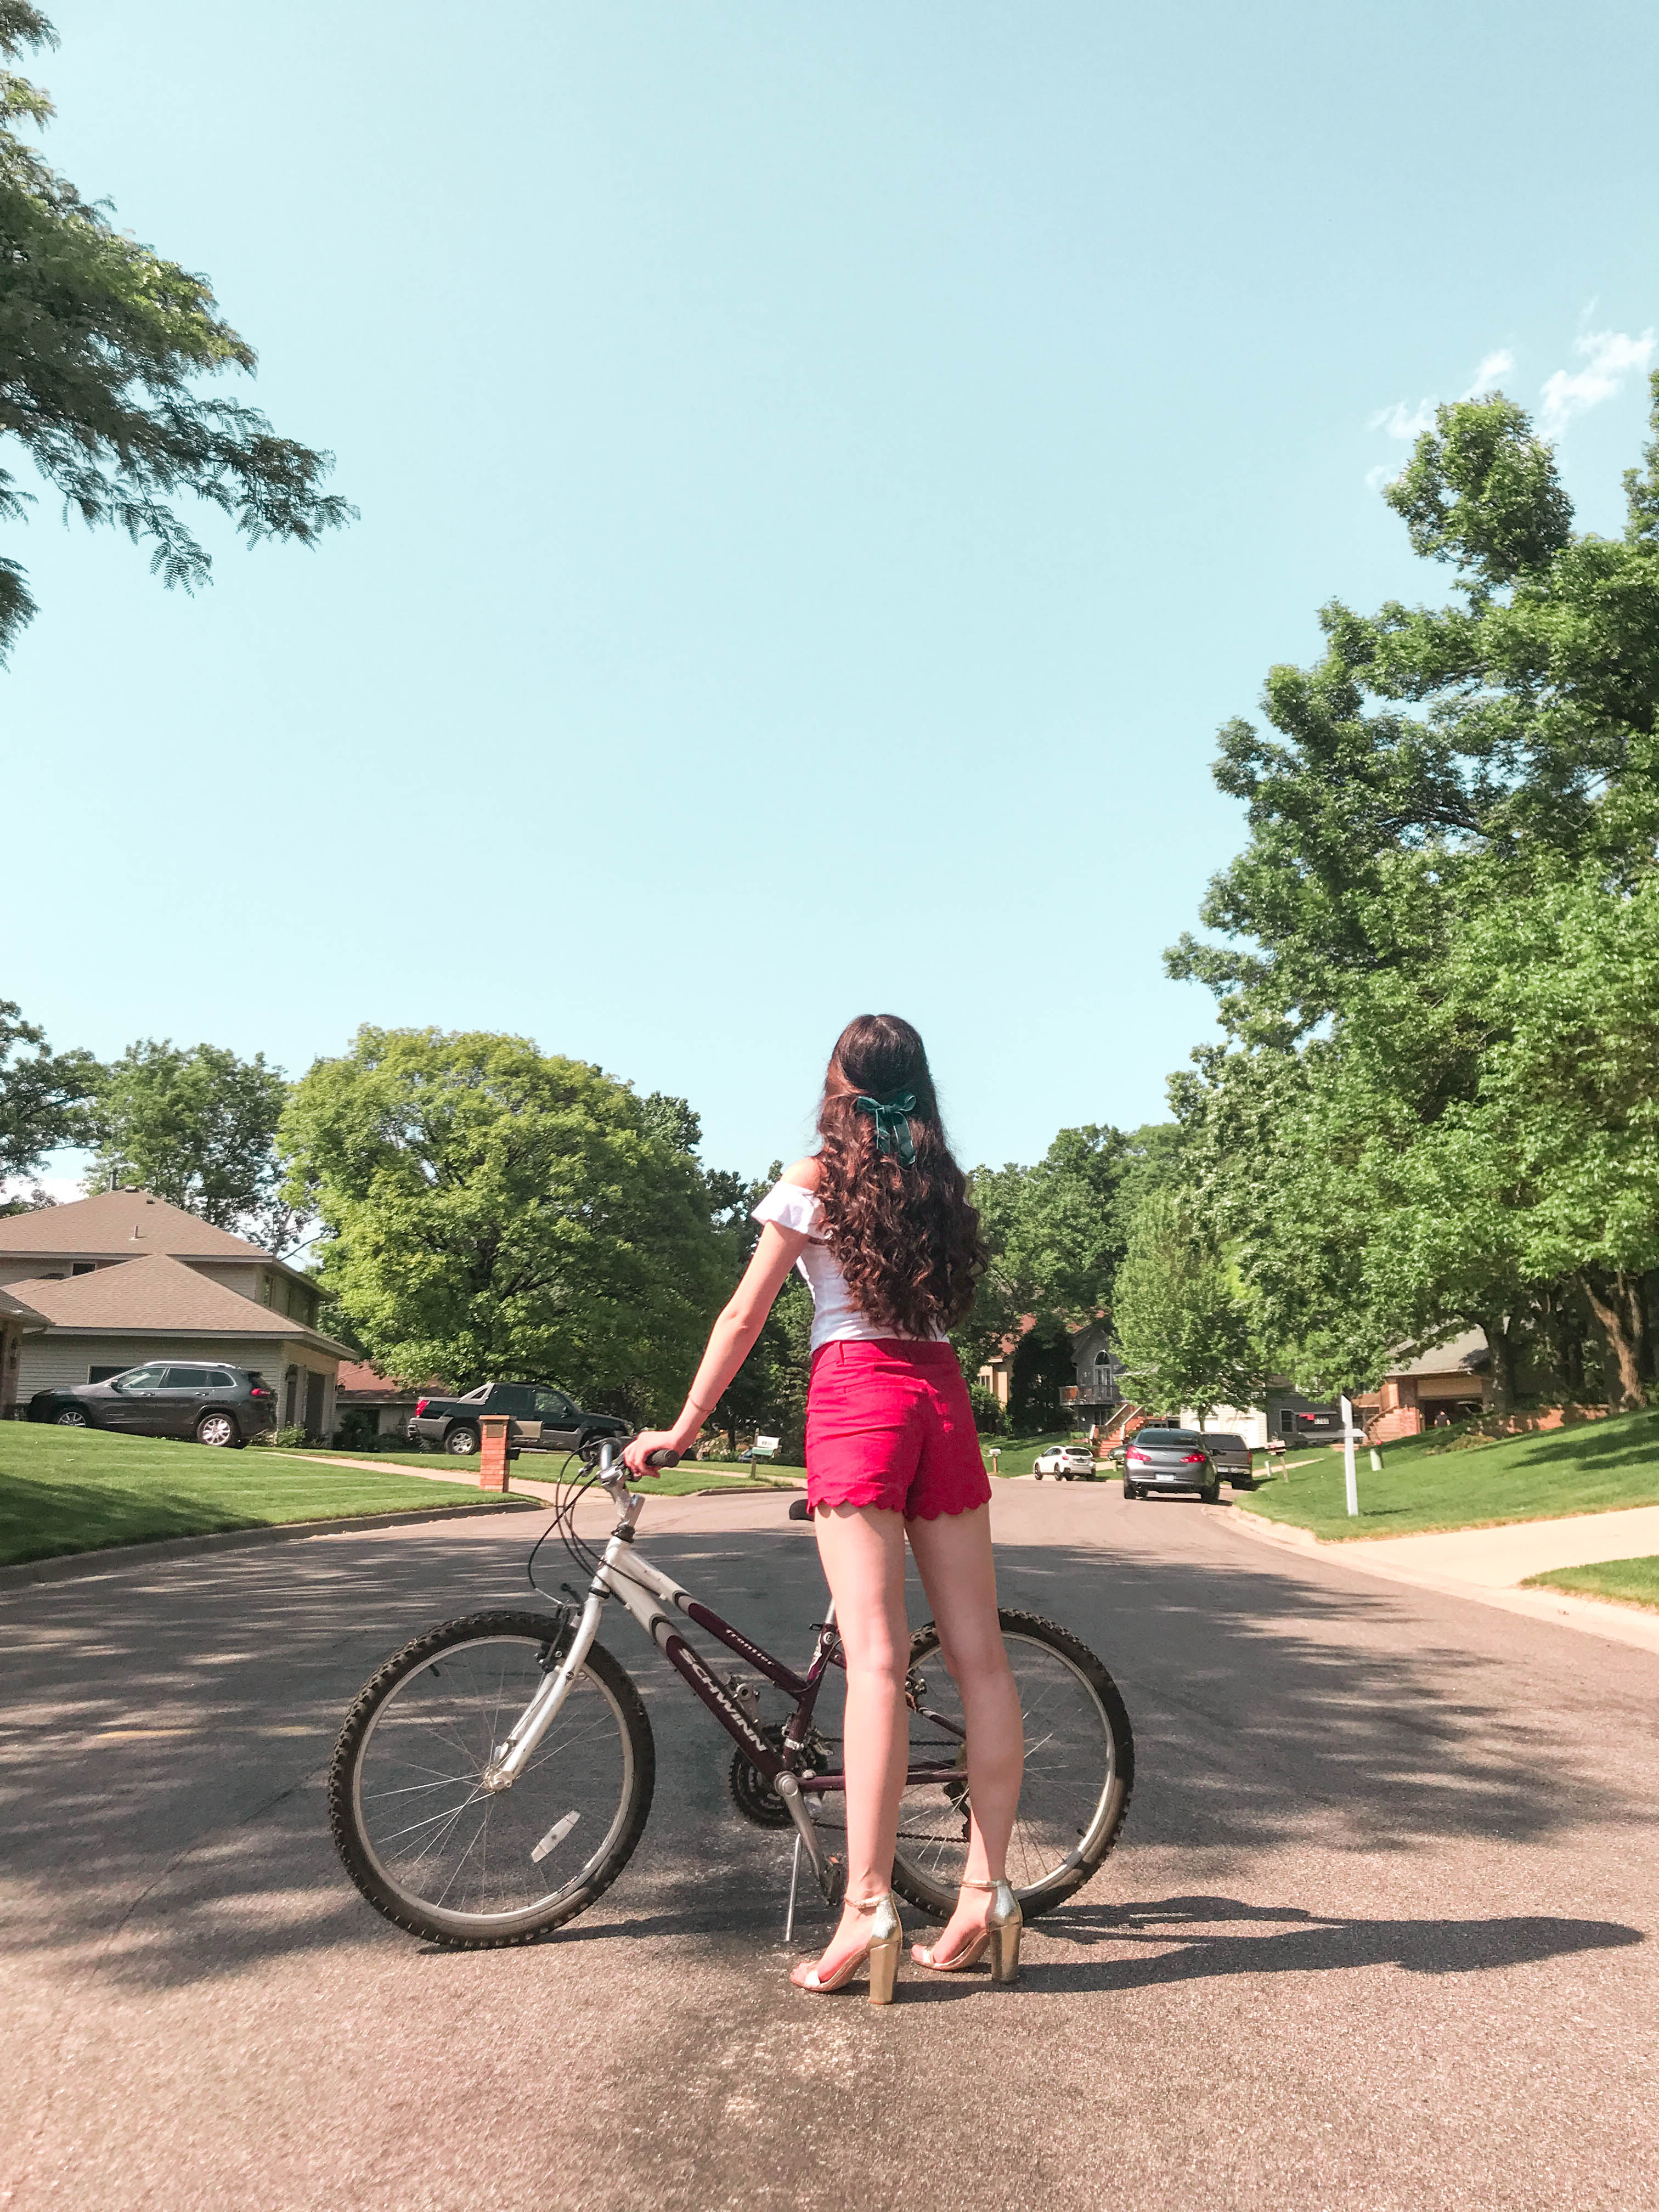 j crew factory j. crew jcrew scallop short shorts white lilly pulitzer alessa top girl with long brown curled hair curly and bicycle gold metallic chunky block heels velvet blue bow red white